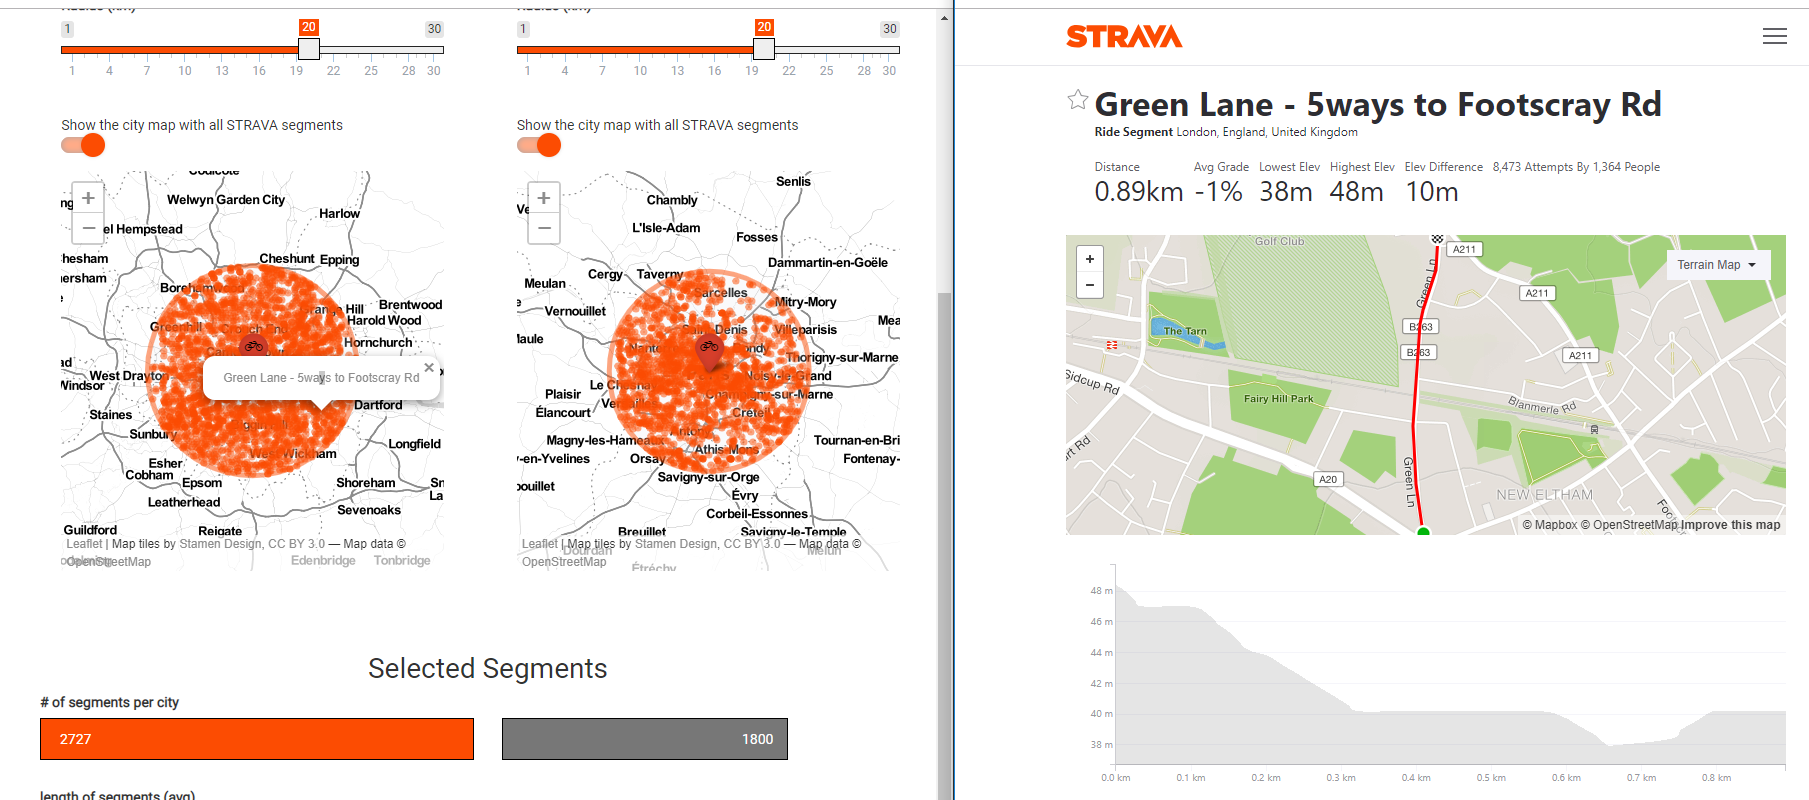 Shiny Contest Submission: City Cycle Race (with STRAVA) - Compare